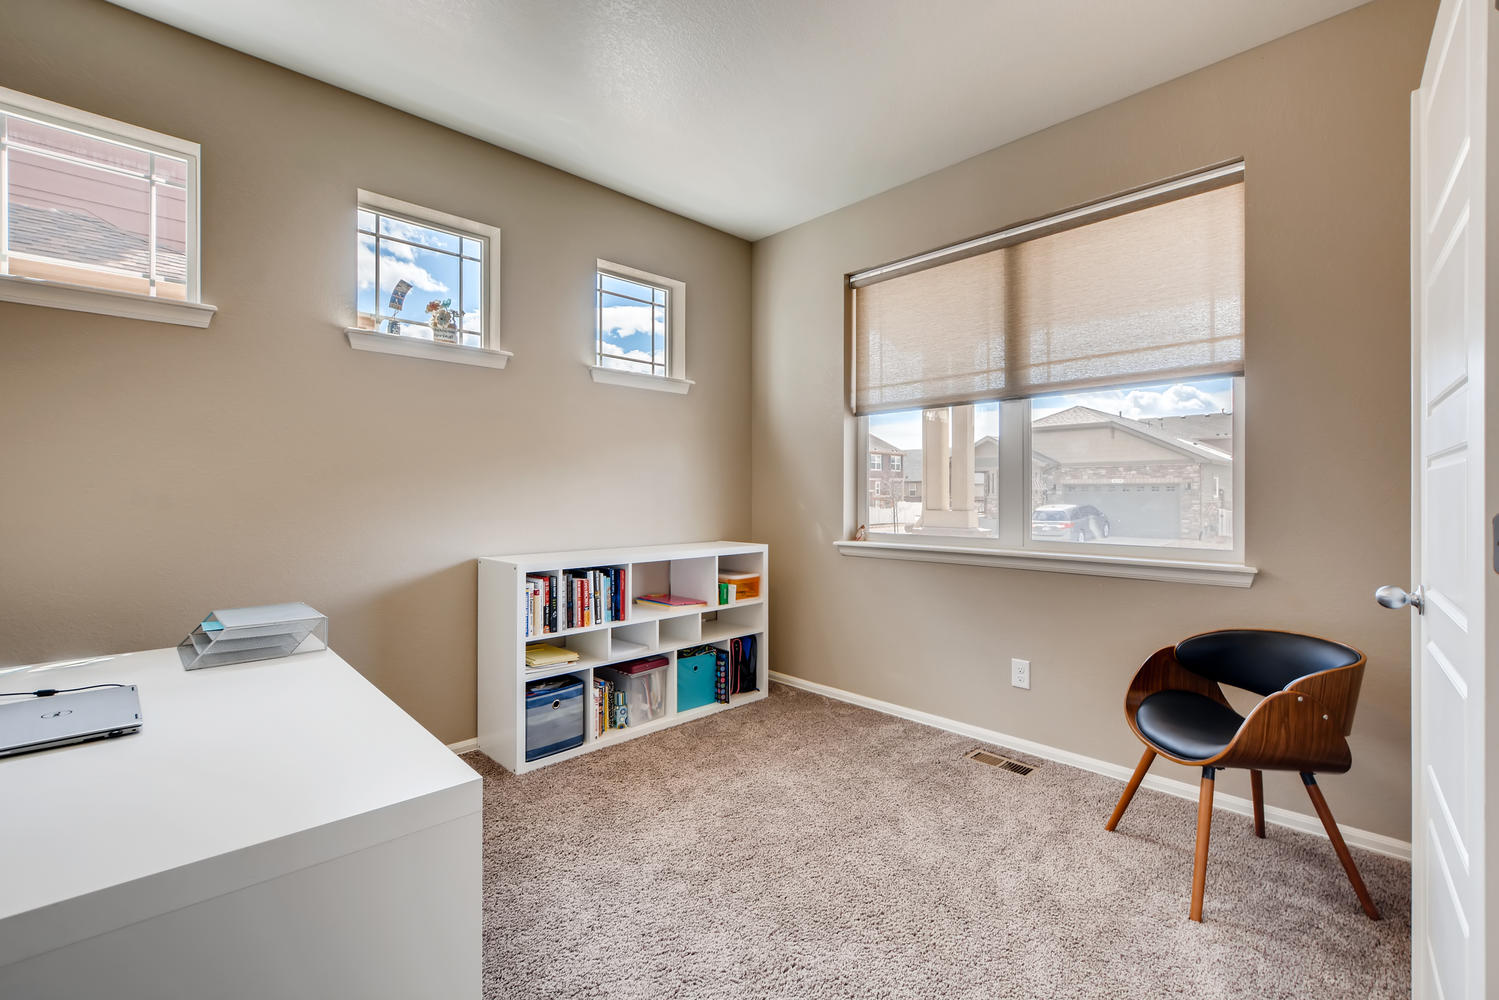 REAL ESTATE LISTING: 2182 Steppe Dr Longmont Private Office